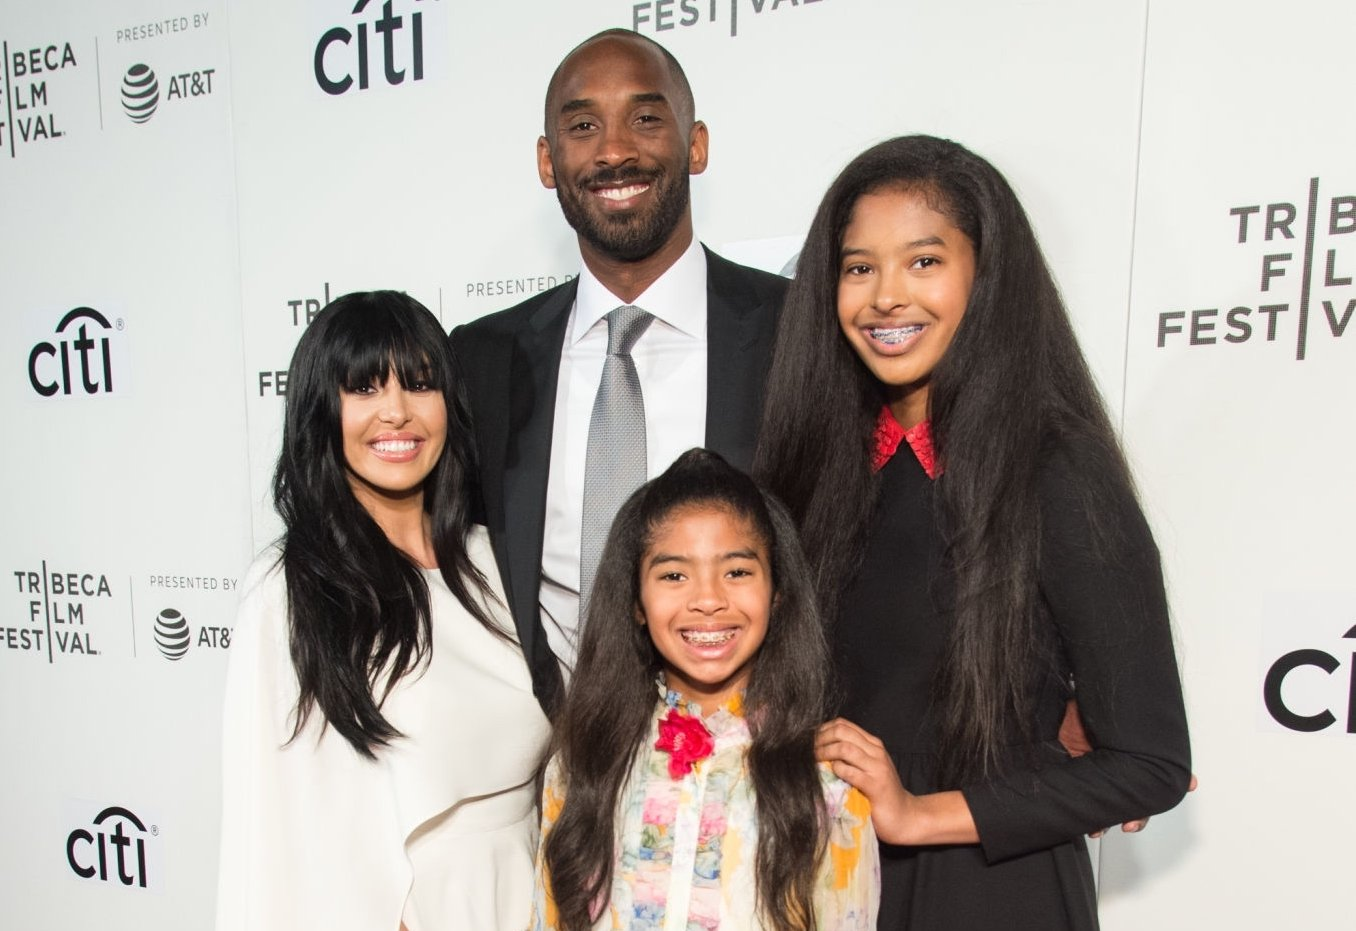 Meet Kobe Bryant's Look Alike Daughter, Natalia